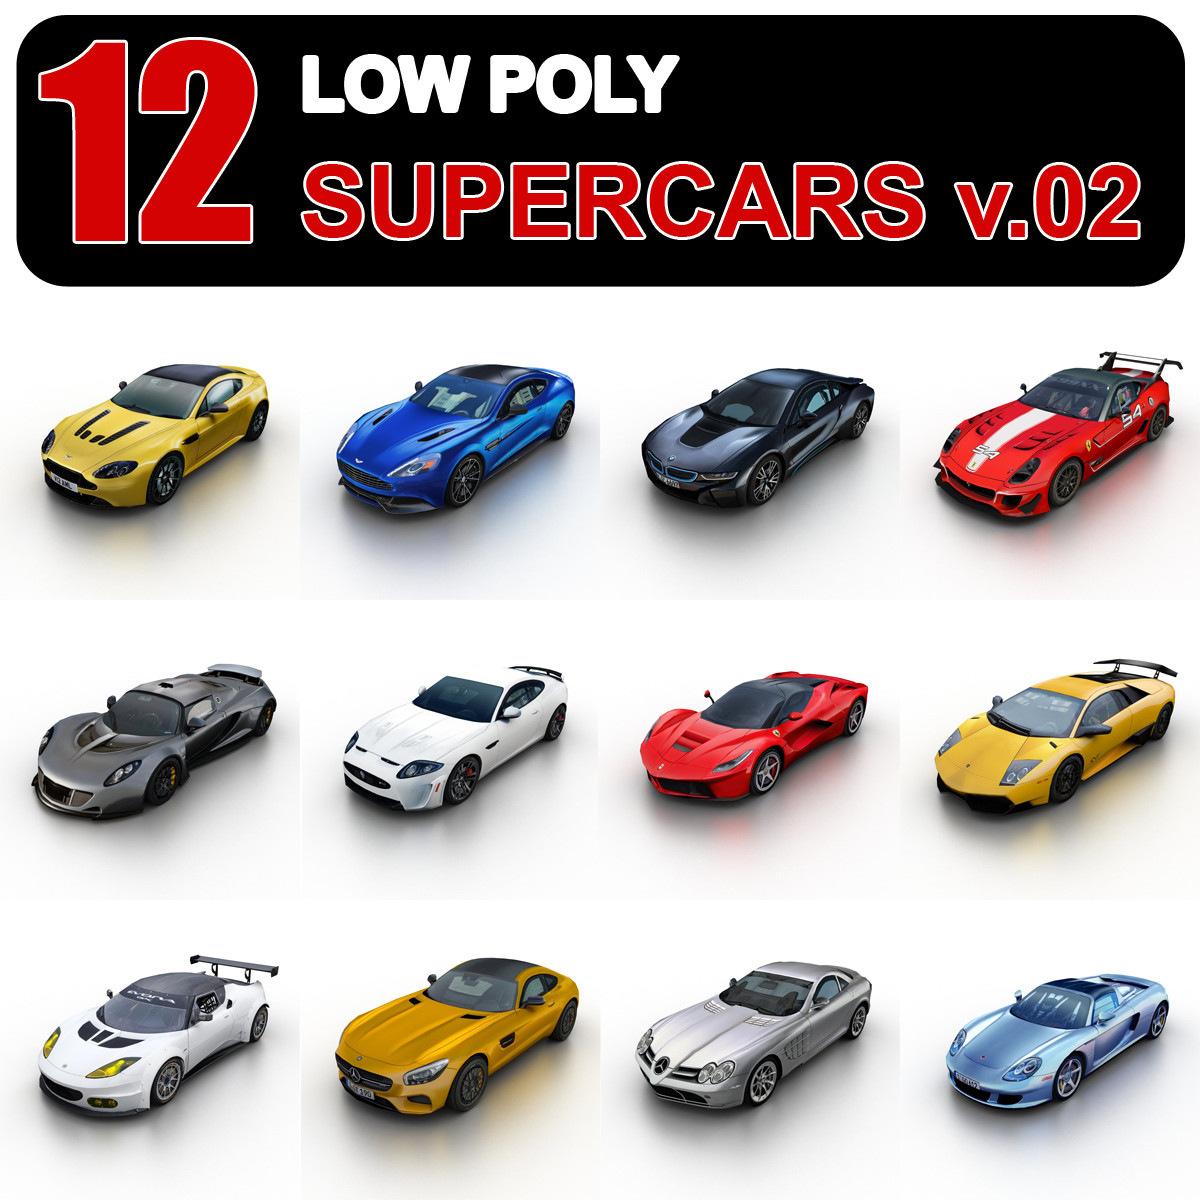 Low Poly Supercars v.02